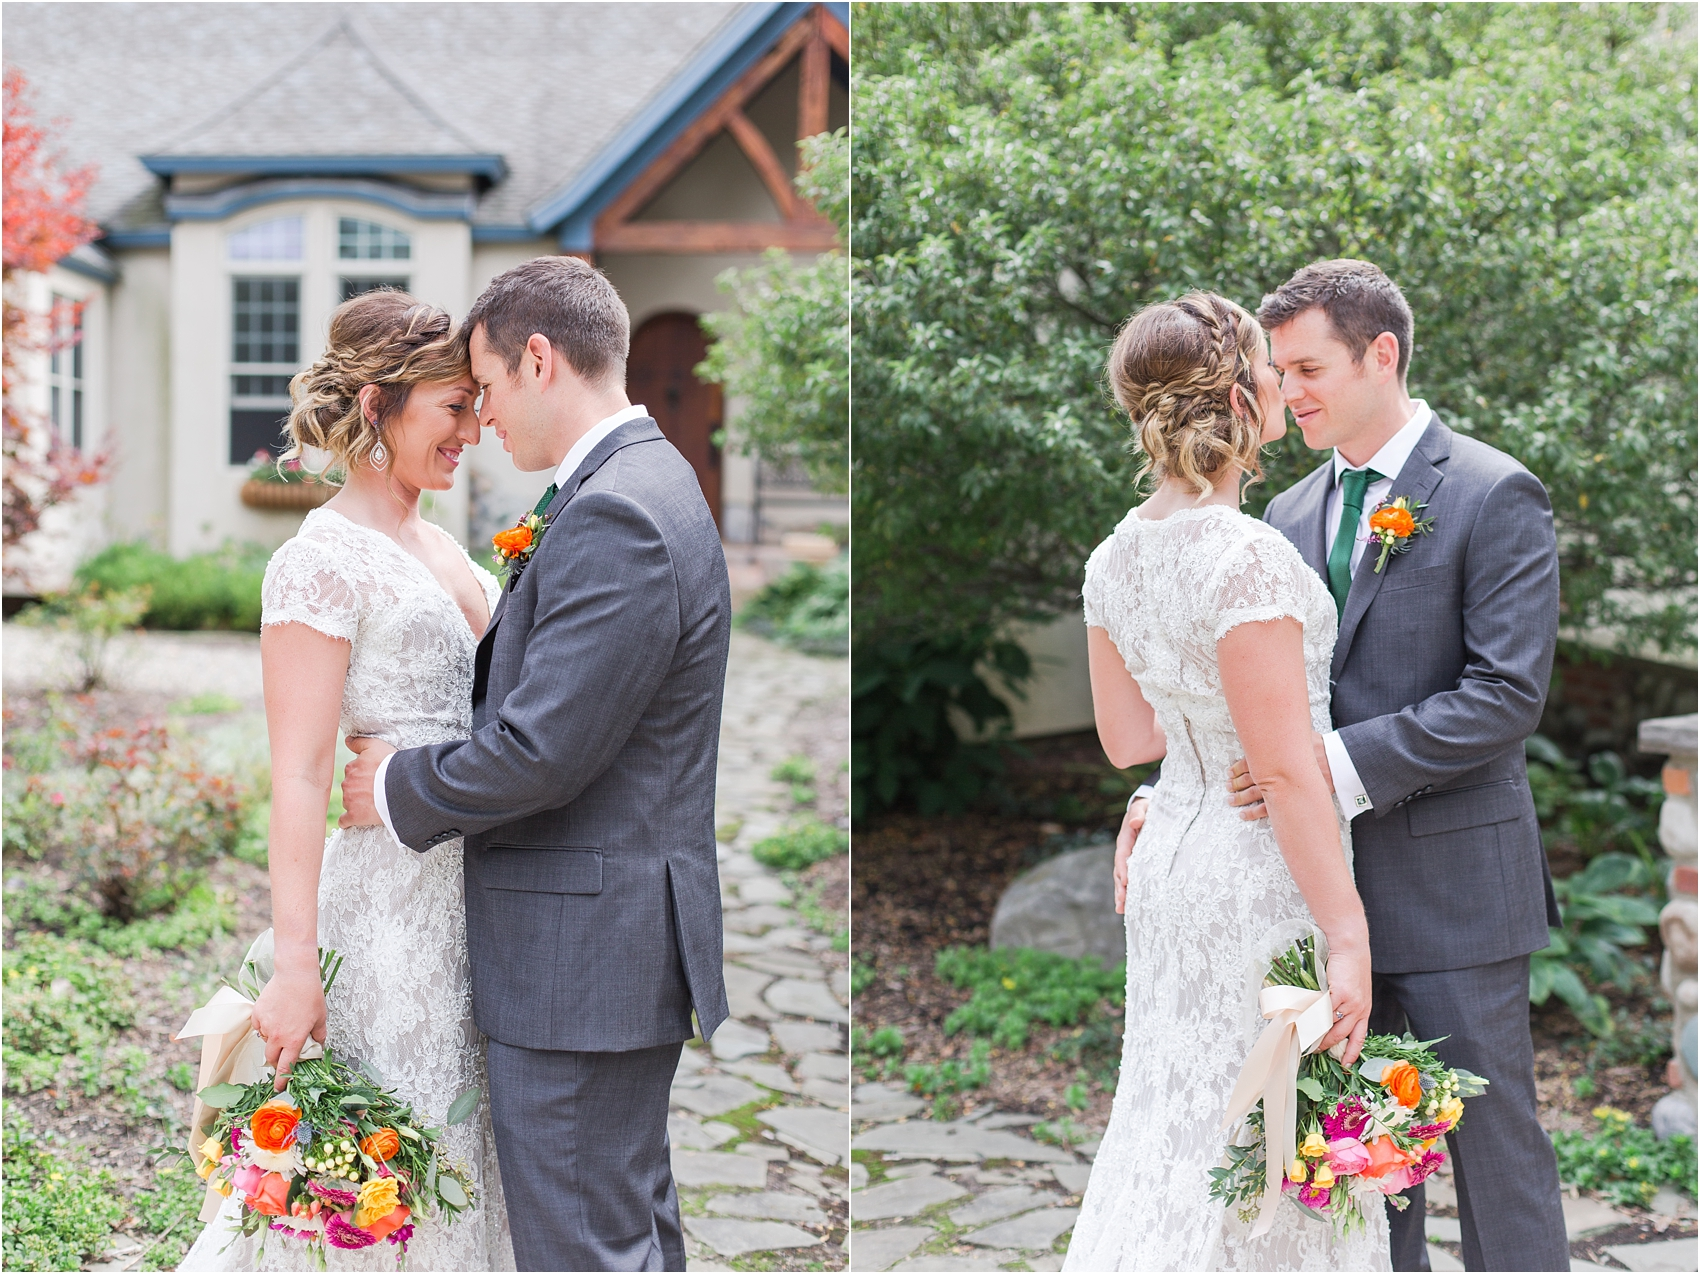 romantic-intimate-backyard-wedding-photos-at-private-estate-in-ann-arbor-mi-by-courtney-carolyn-photography_0064.jpg